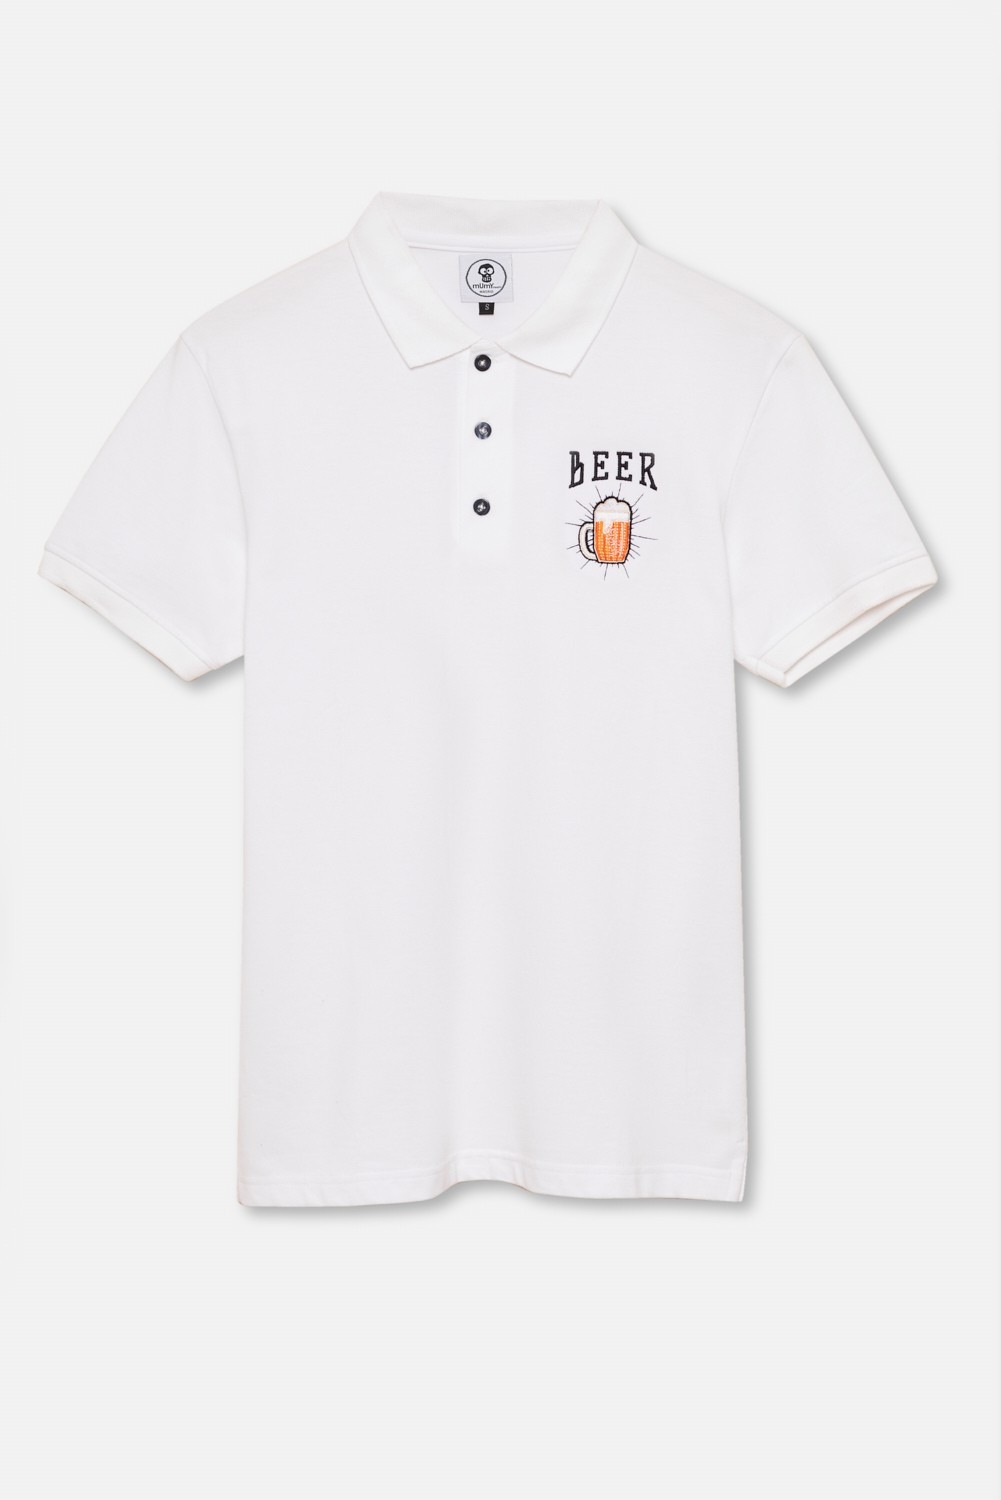 ADULT´S EMBROIDERED POLO BEER IN WHITE